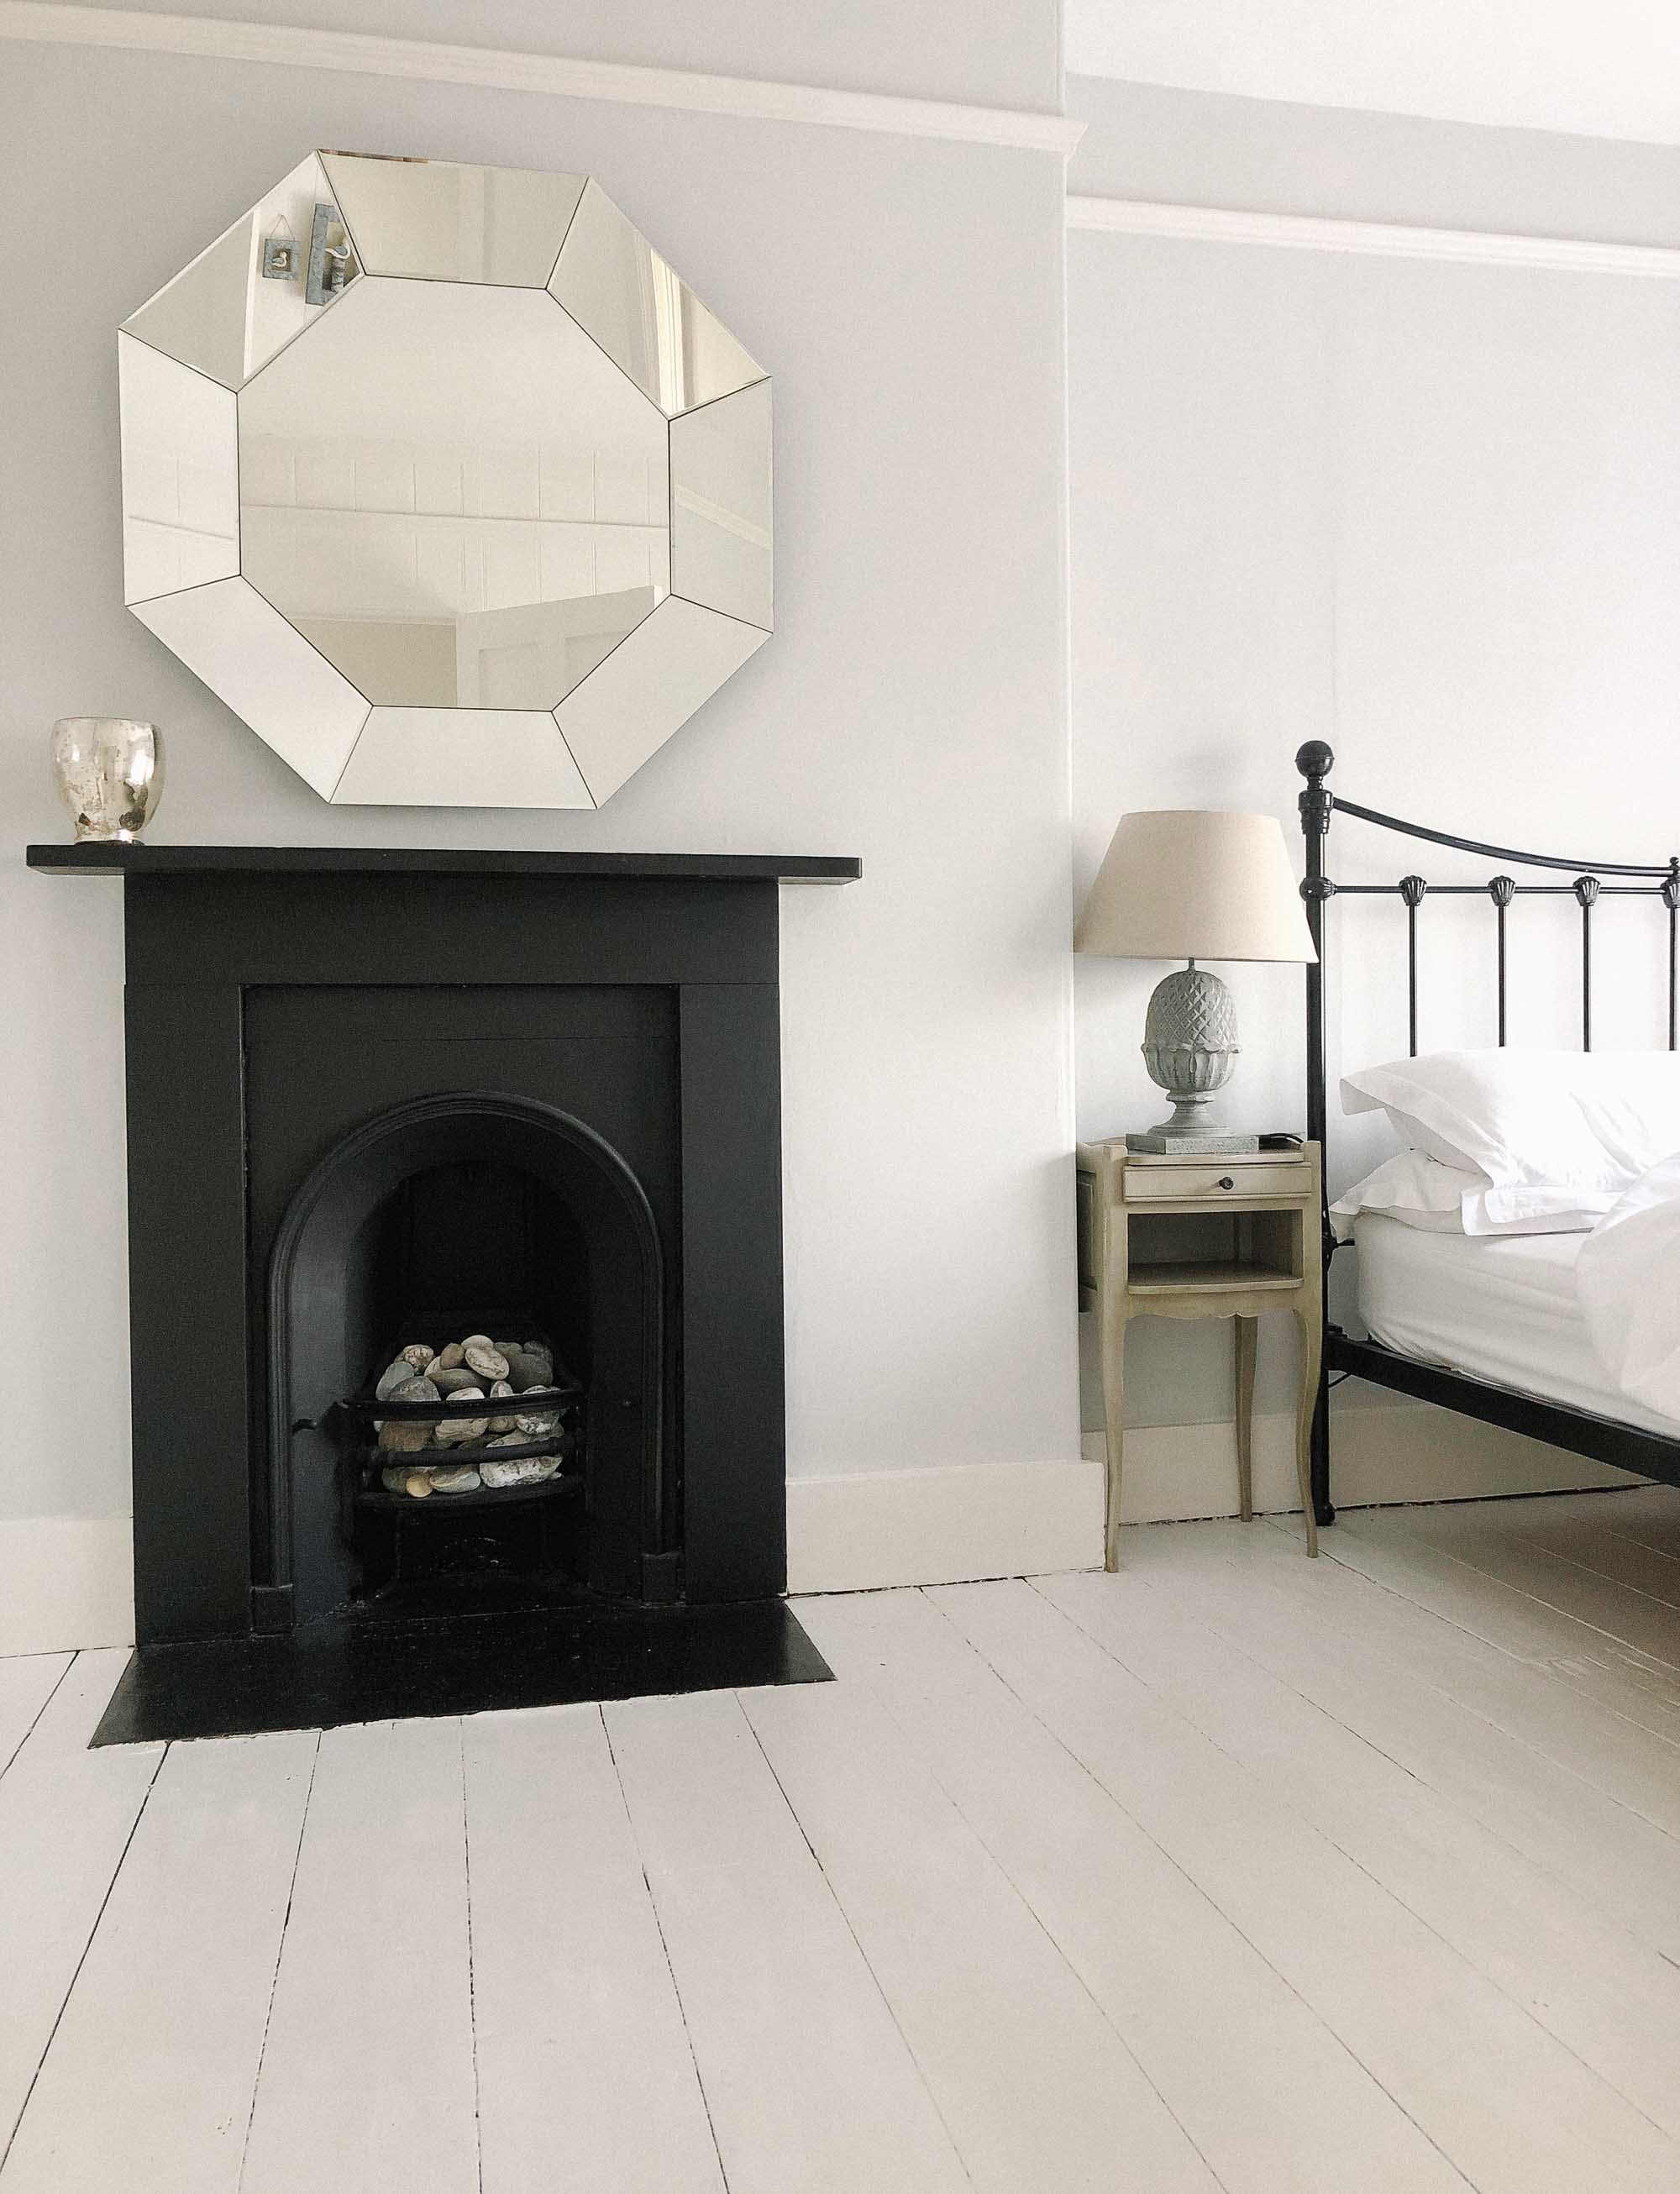 19 white washed cottage bedroom with black fireplace.jpg